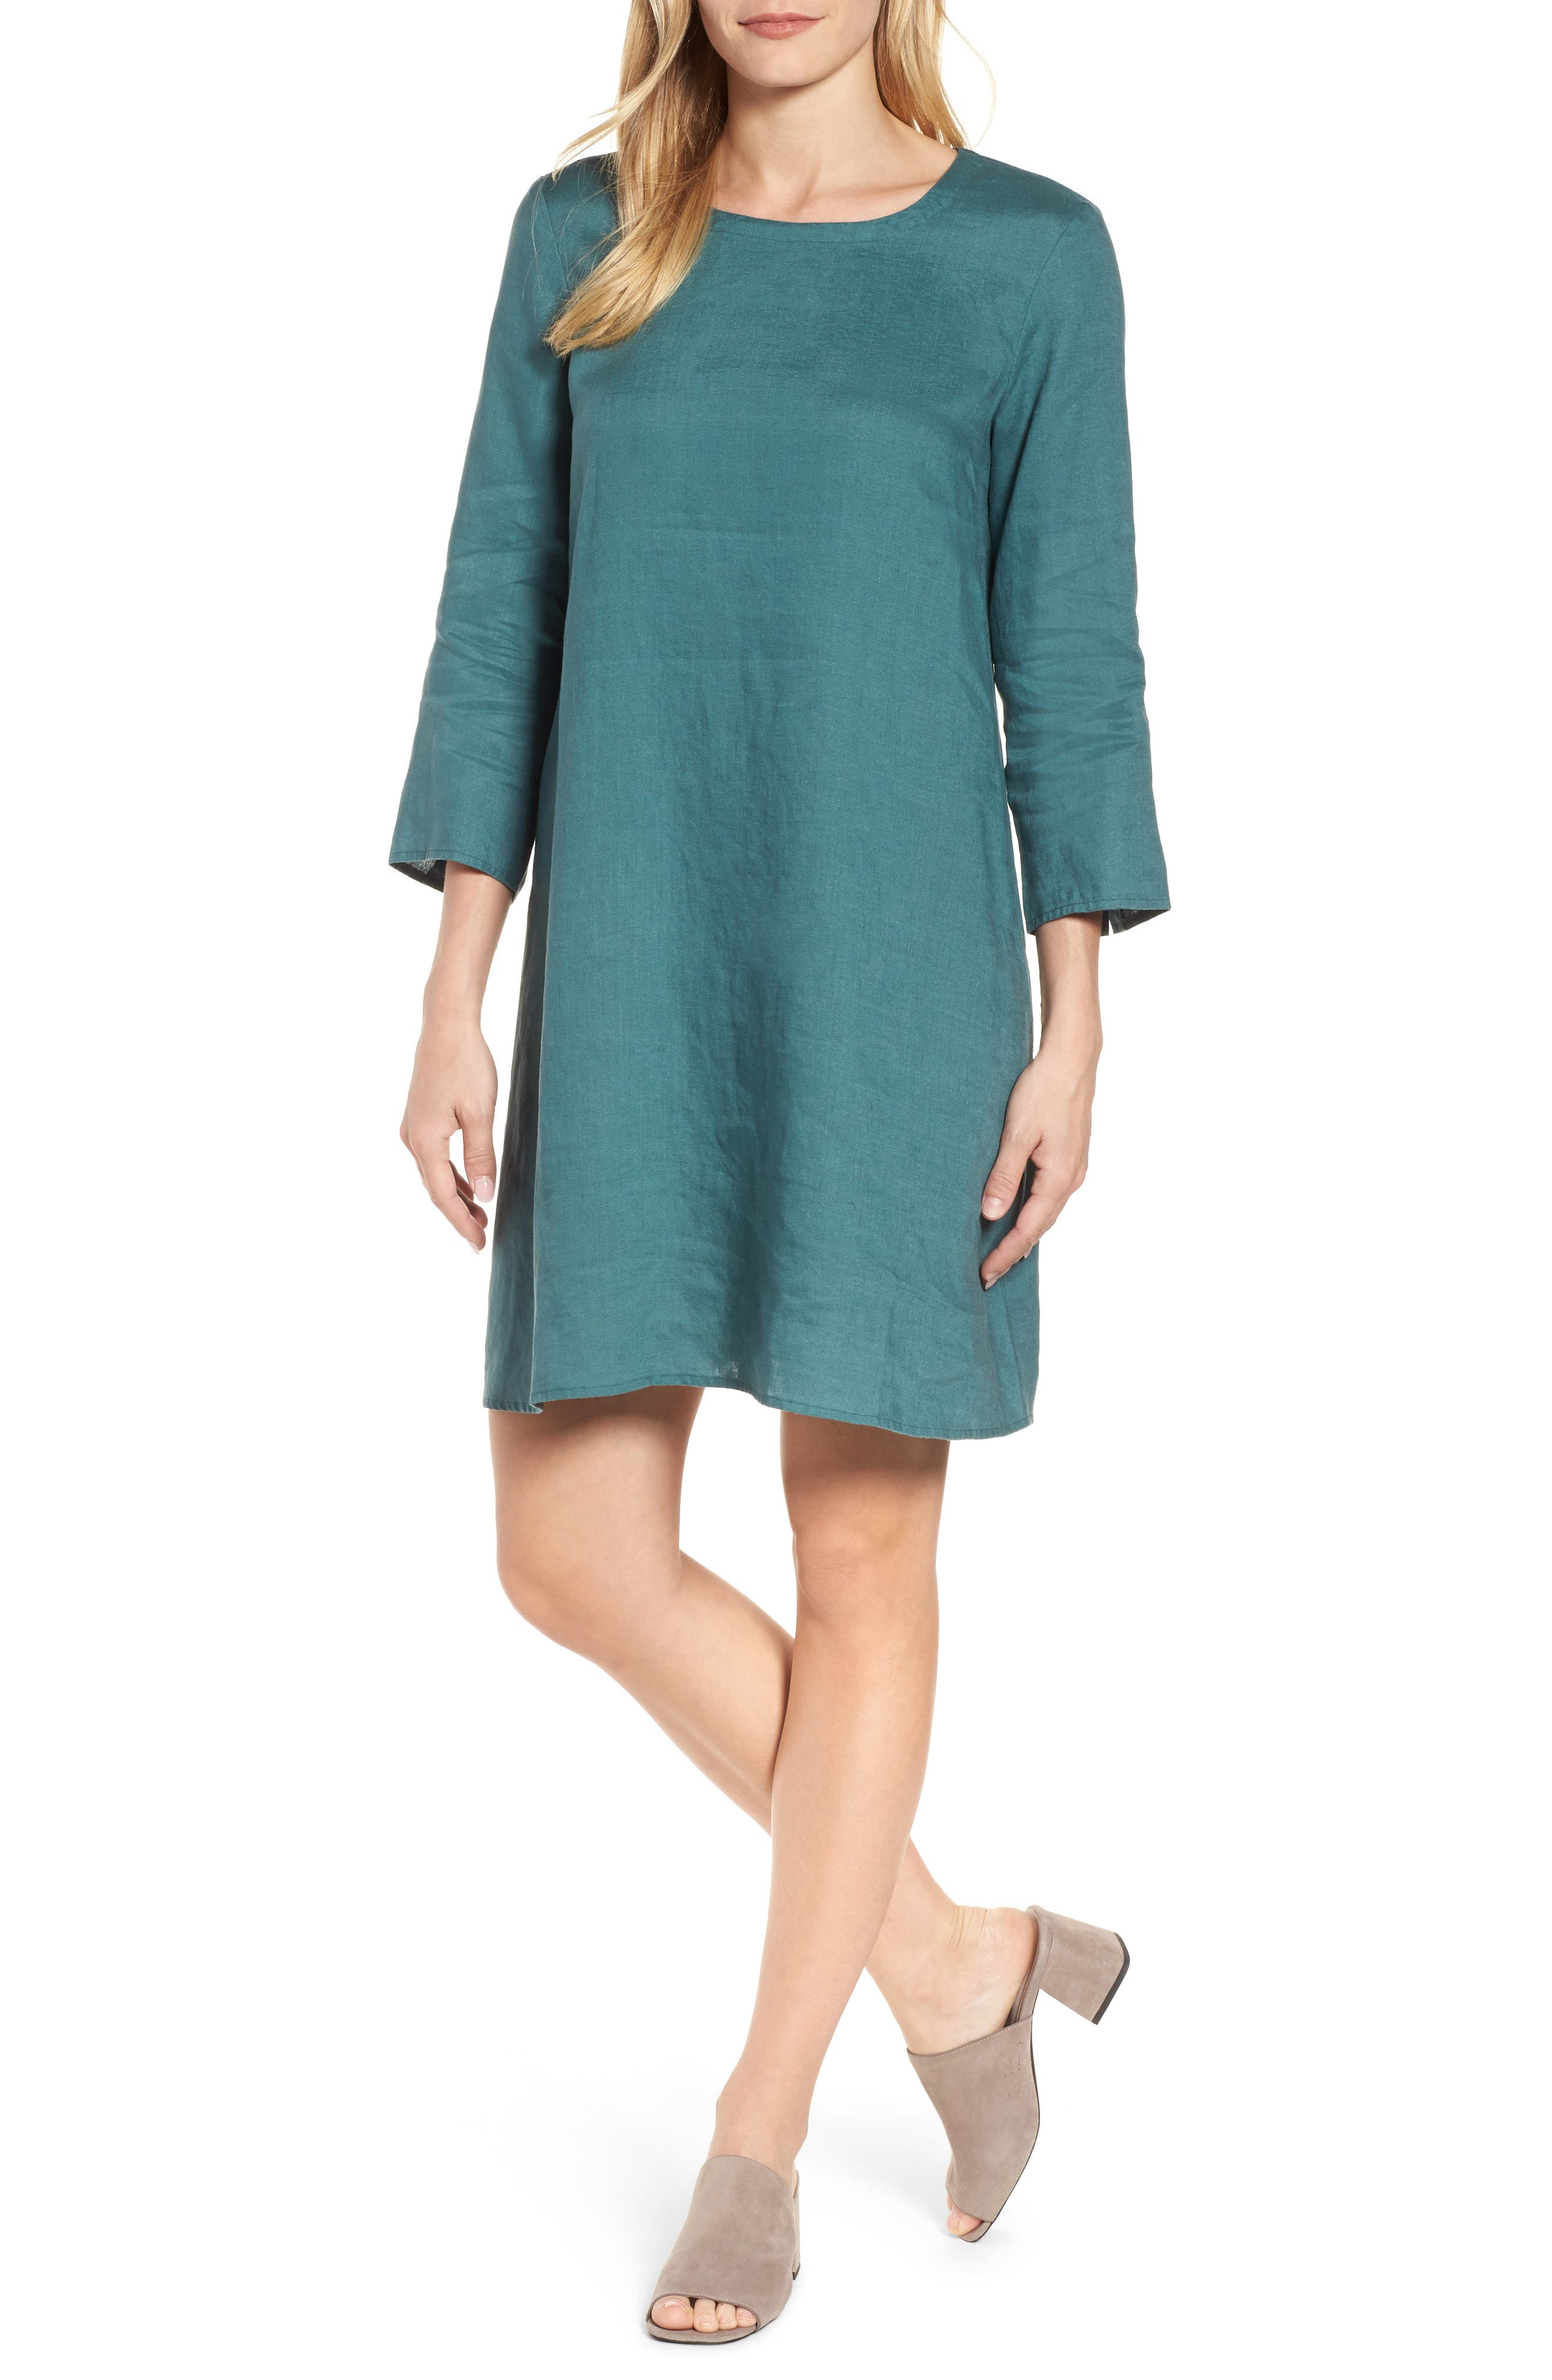 Organic Linen Round Neck Shift Dress,                         Main,                         color, Dragonfly